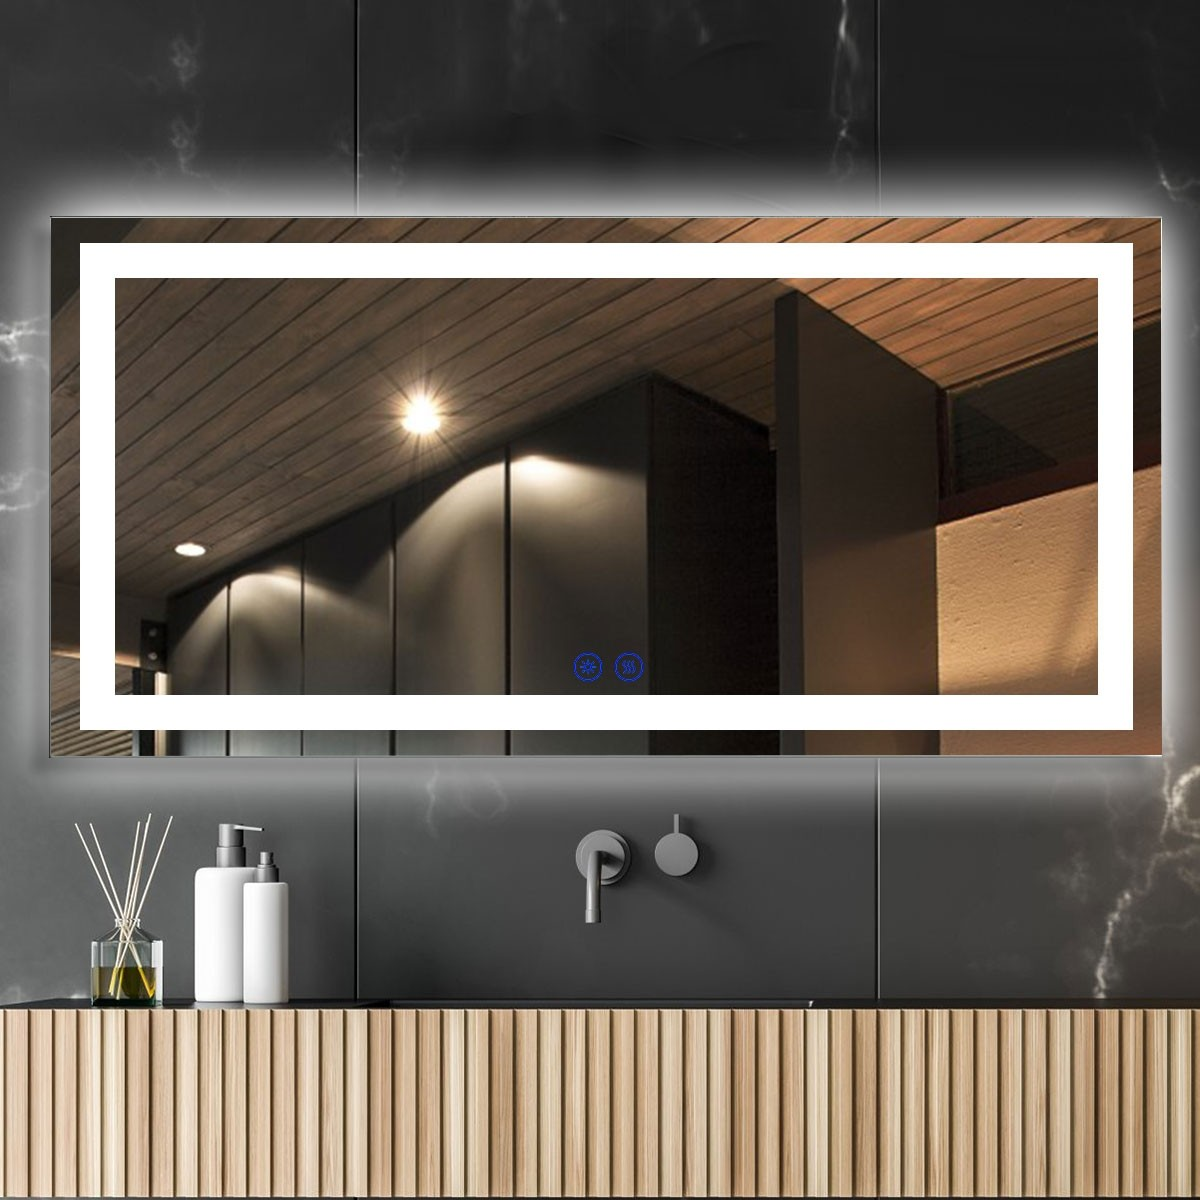 DECORAPORT 84 x 40 Inch LED Bathroom Mirror/Dress Mirror with Touch Button, Anti Fog, Dimmable, Vertical & Horizontal Mount (CT01-8440)